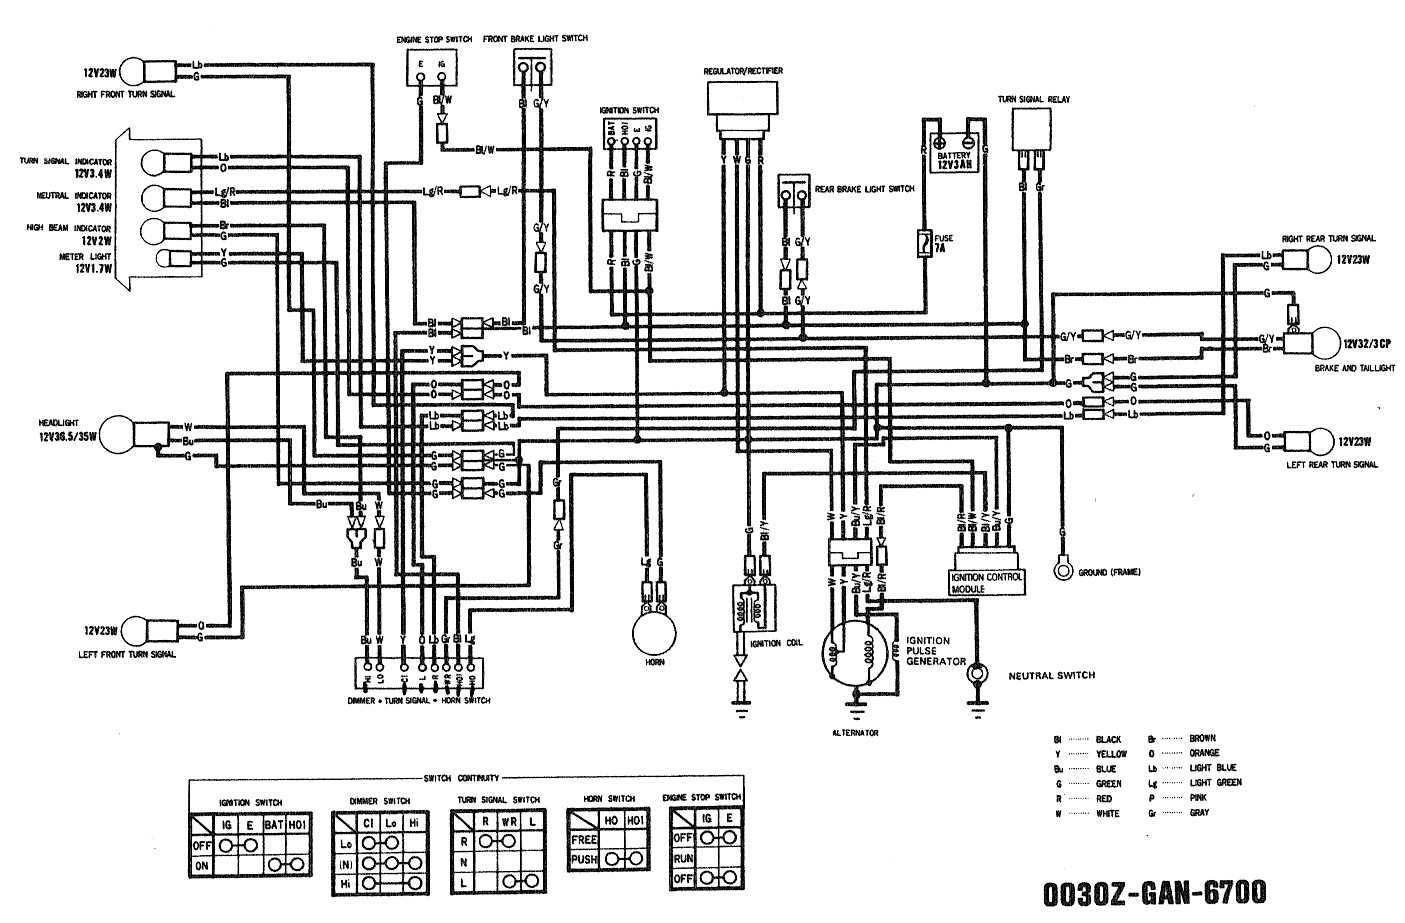 Appealing 1981 honda c70 passport wiring diagram pictures best outstanding 1980 honda c70 passport wiring diagram ideas best asfbconference2016 Gallery